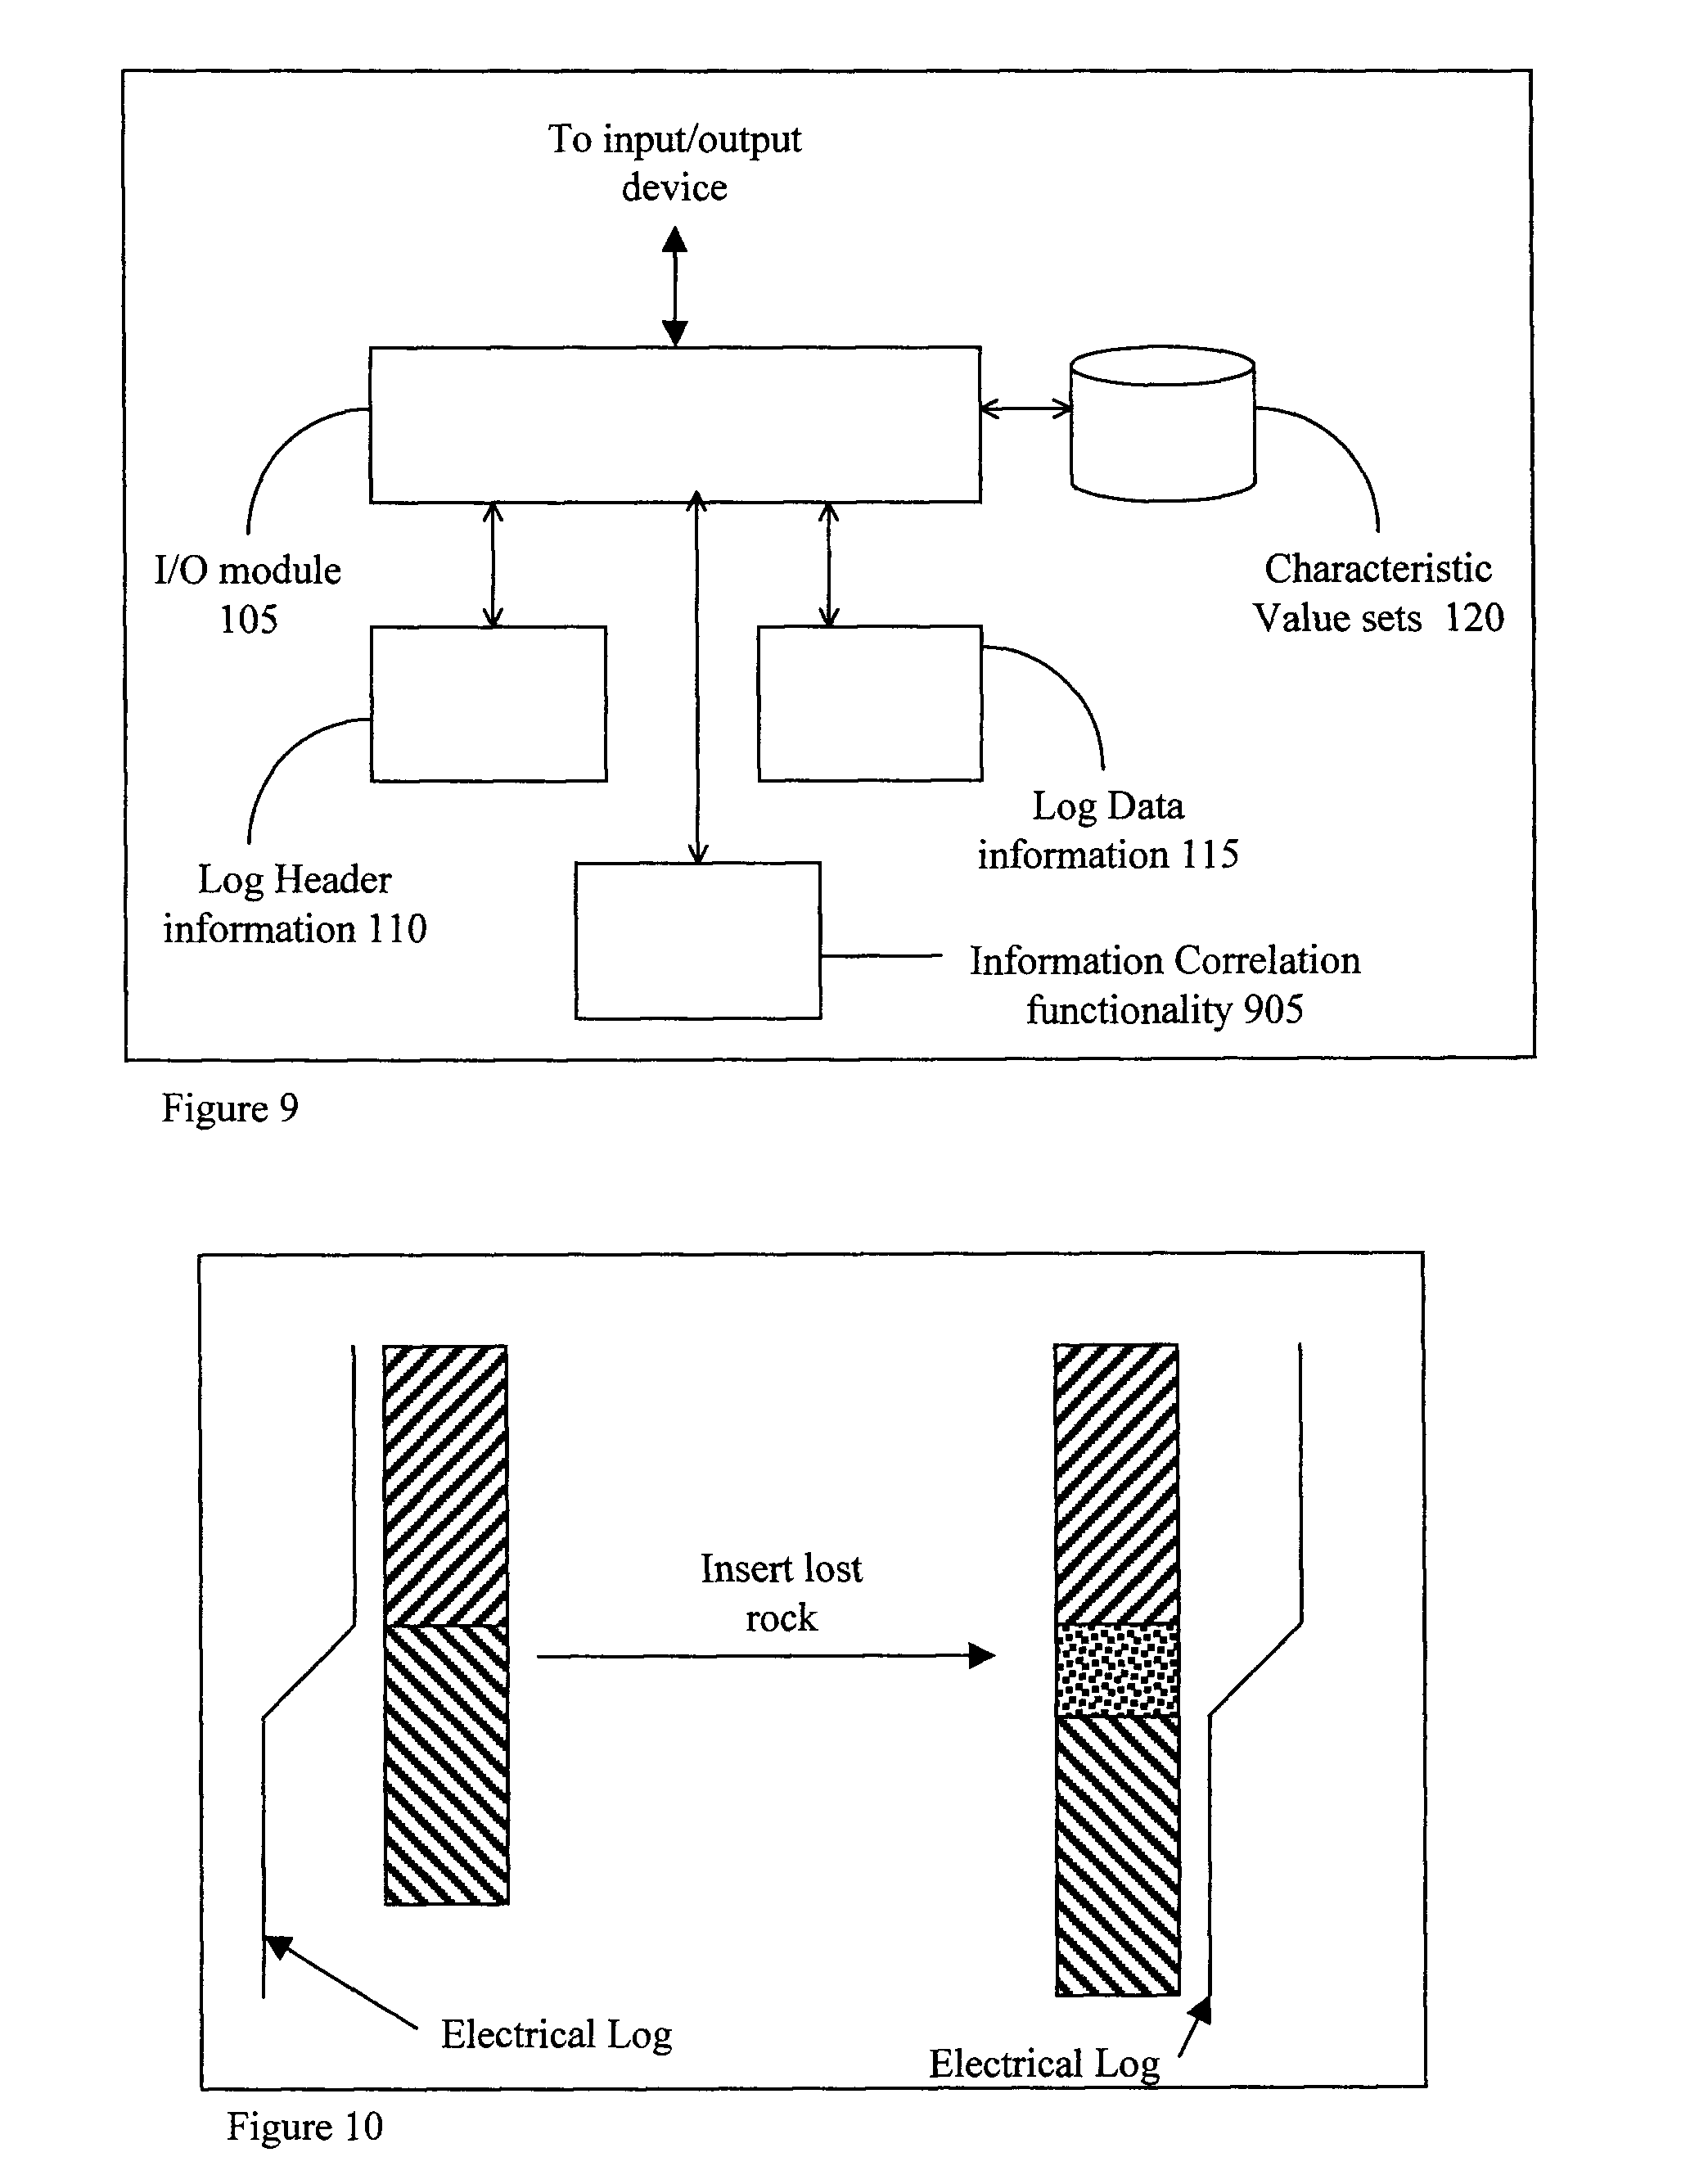 Brevet US8577614 - Information characterization system and methods